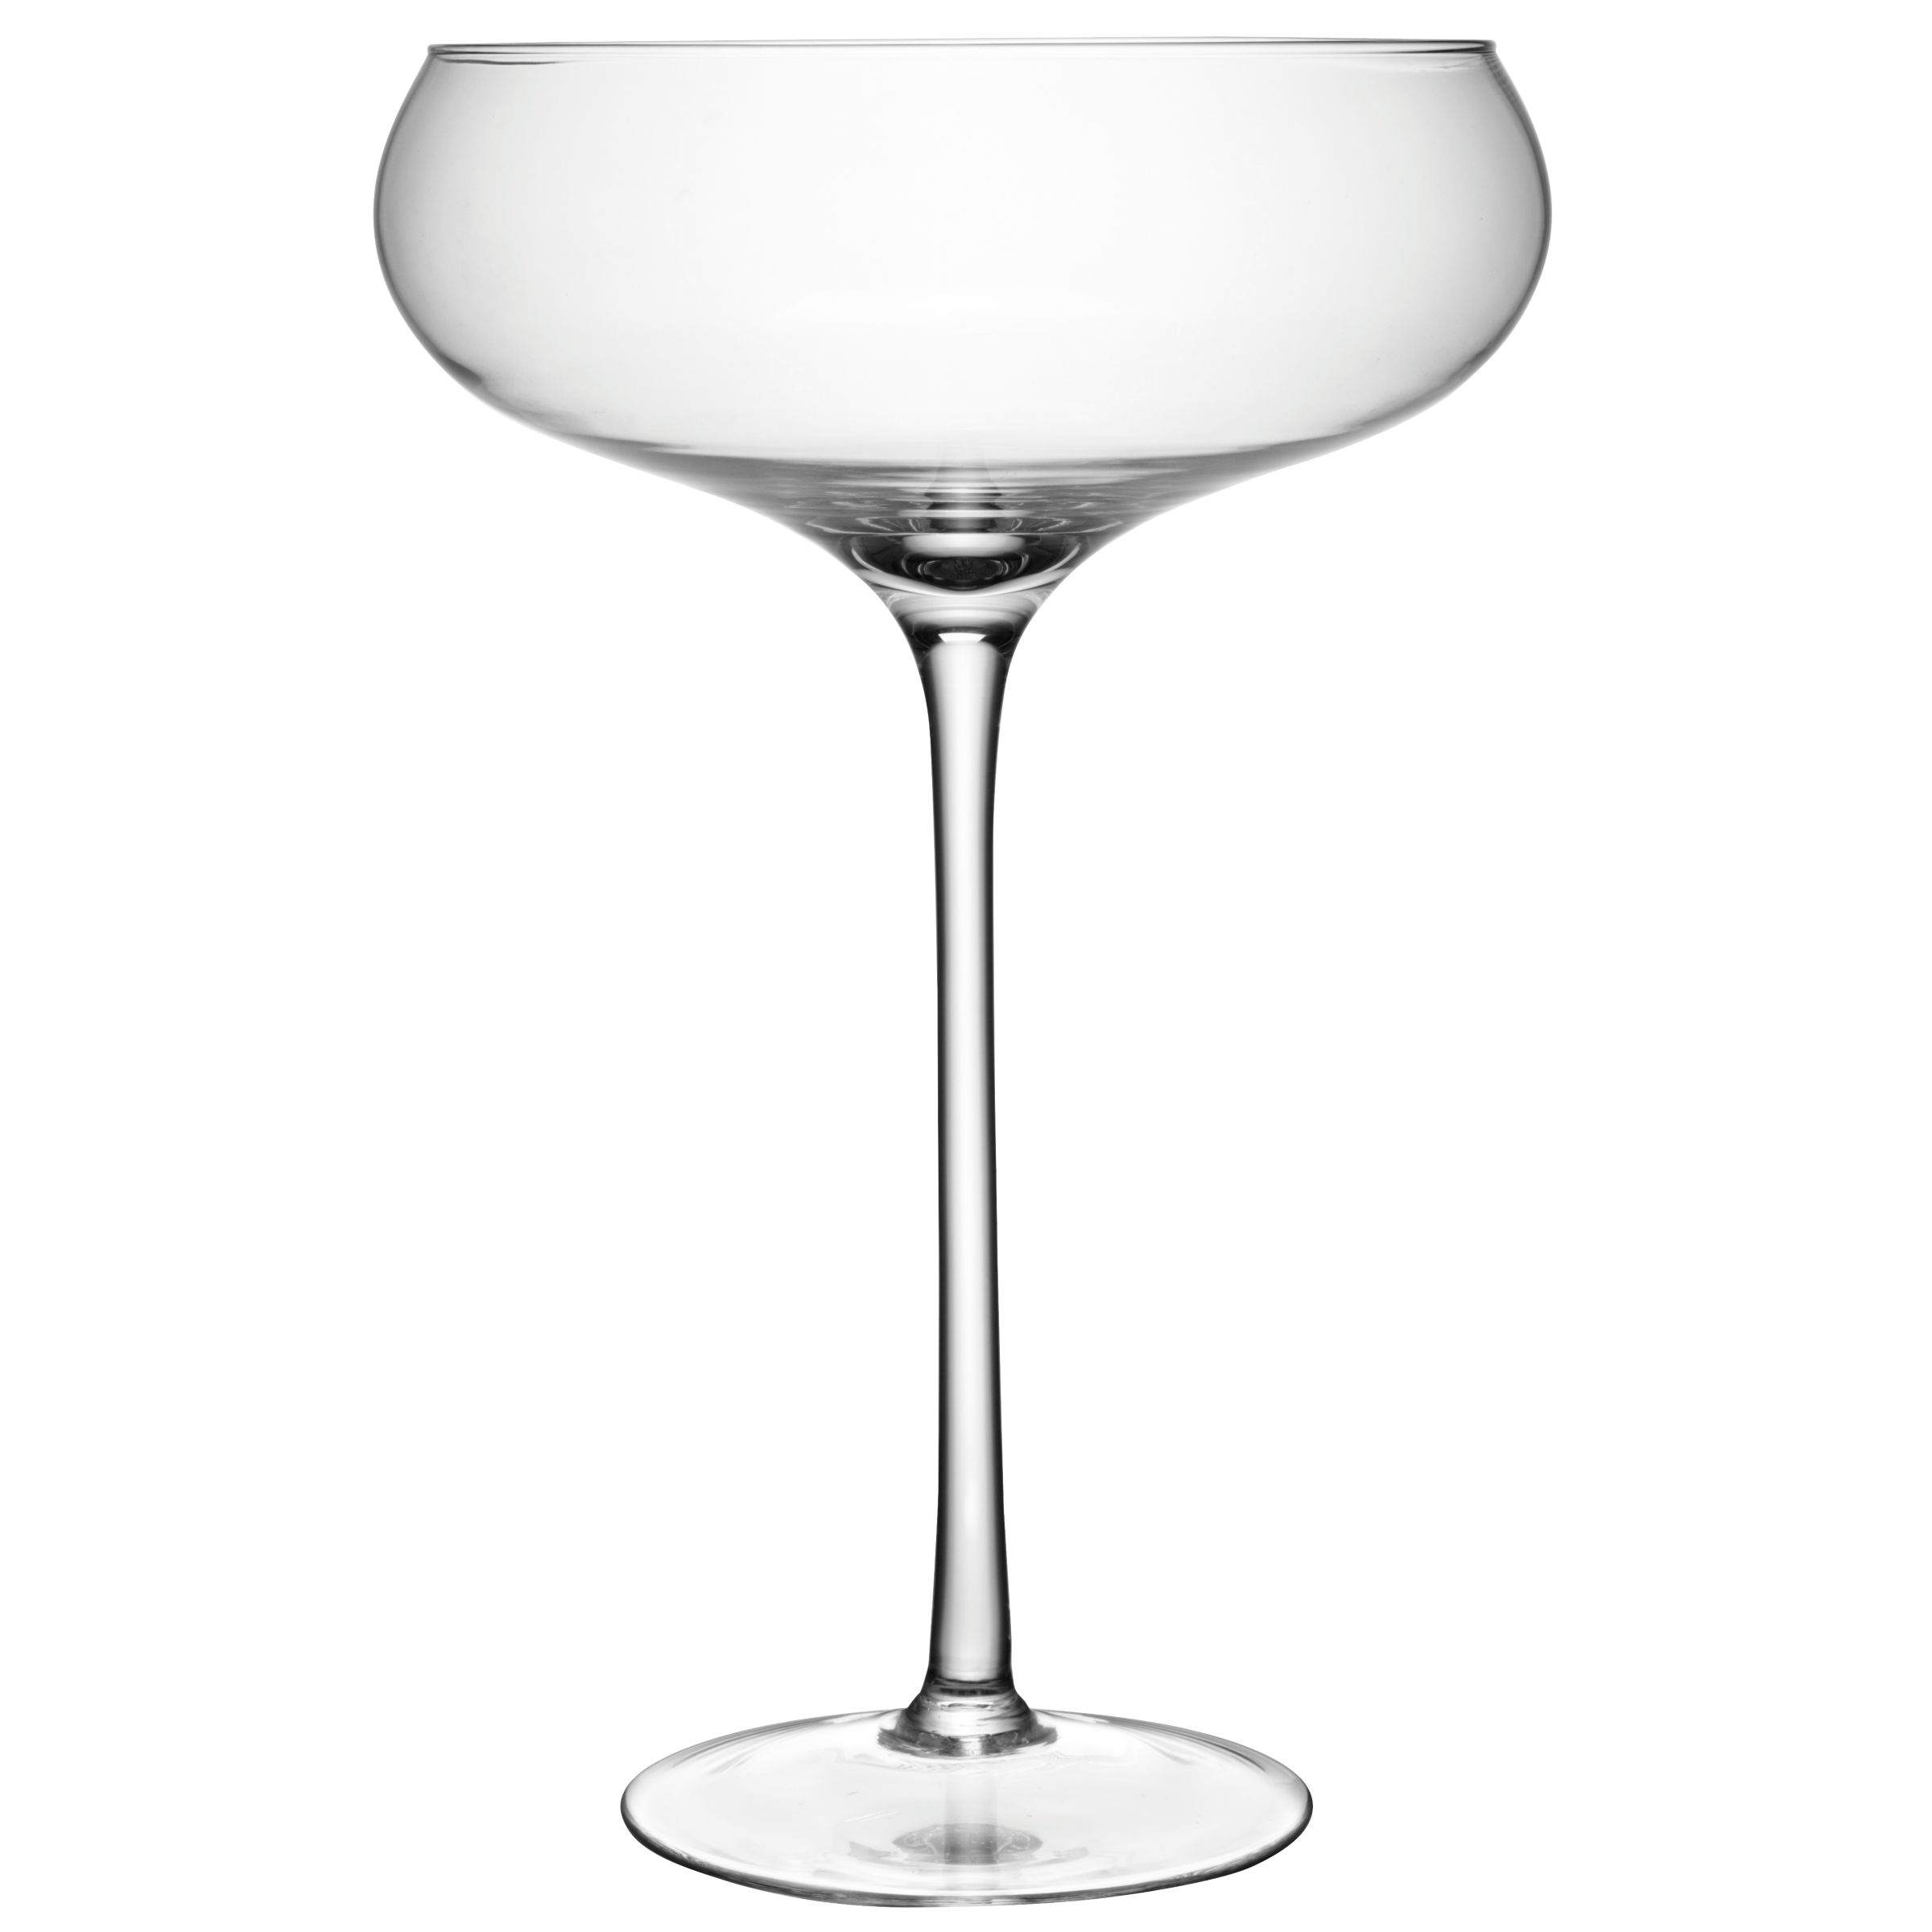 Champagne Coupe Lsa International Maxa Giant Champagne Coupe 8 4l